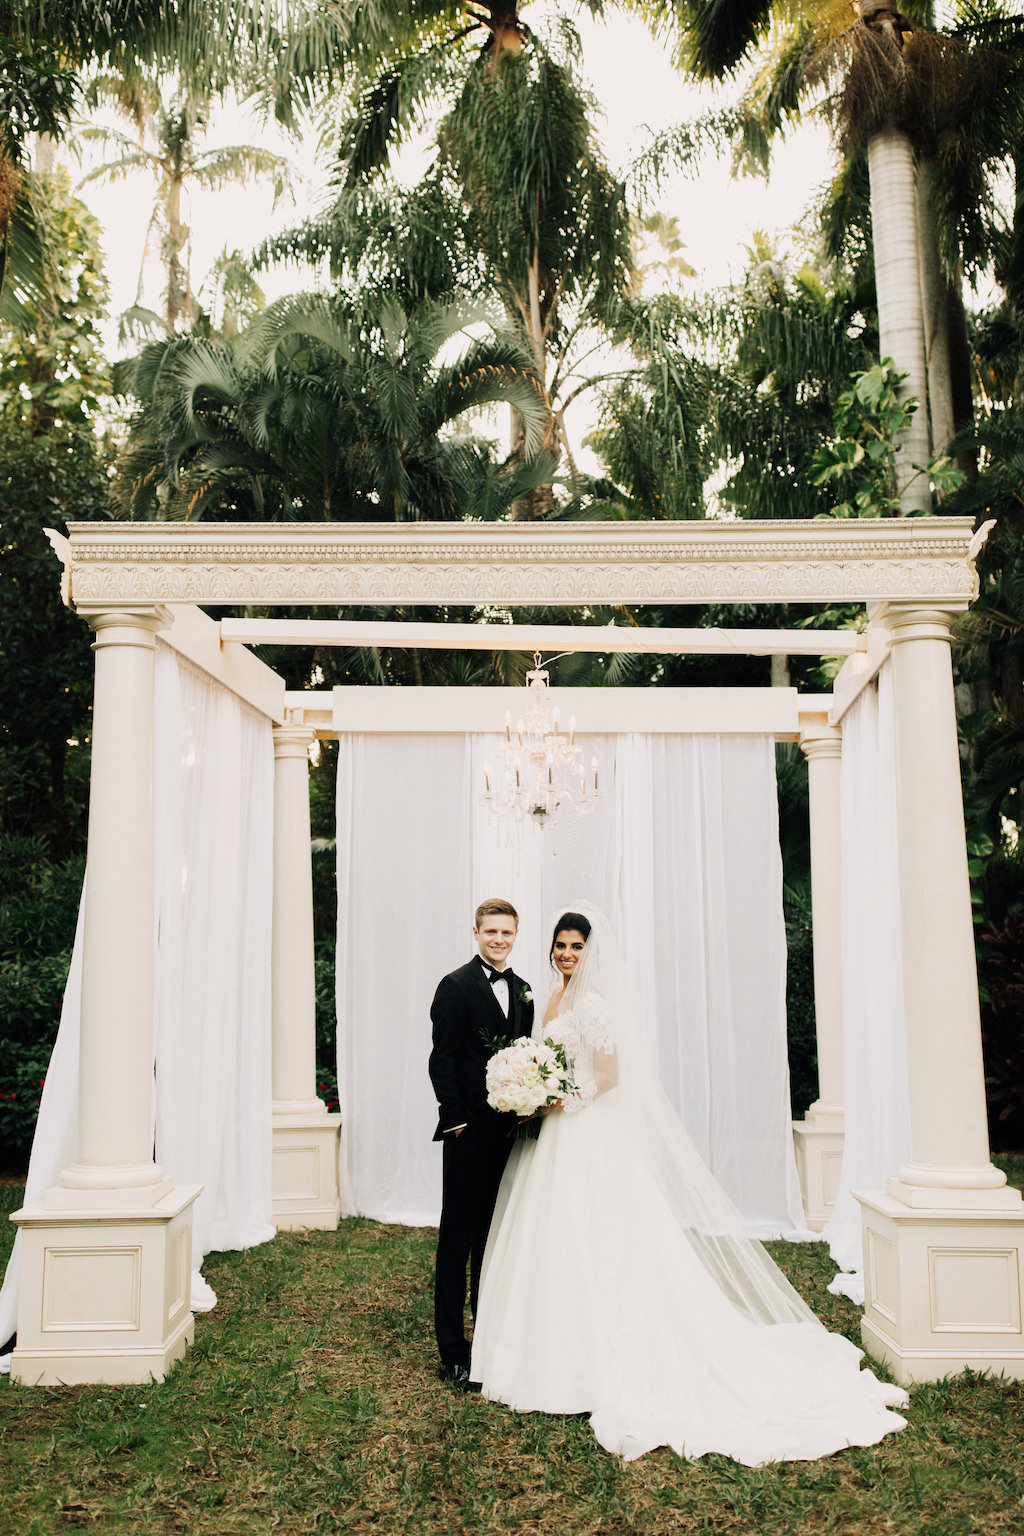 Elegant Outdoor Bride and Groom Wedding Portrait, Ivory Ceremony Pillar Arch with White Drapery and Crystal Chandelier   St. Pete Wedding Venue The Sunken Gardens